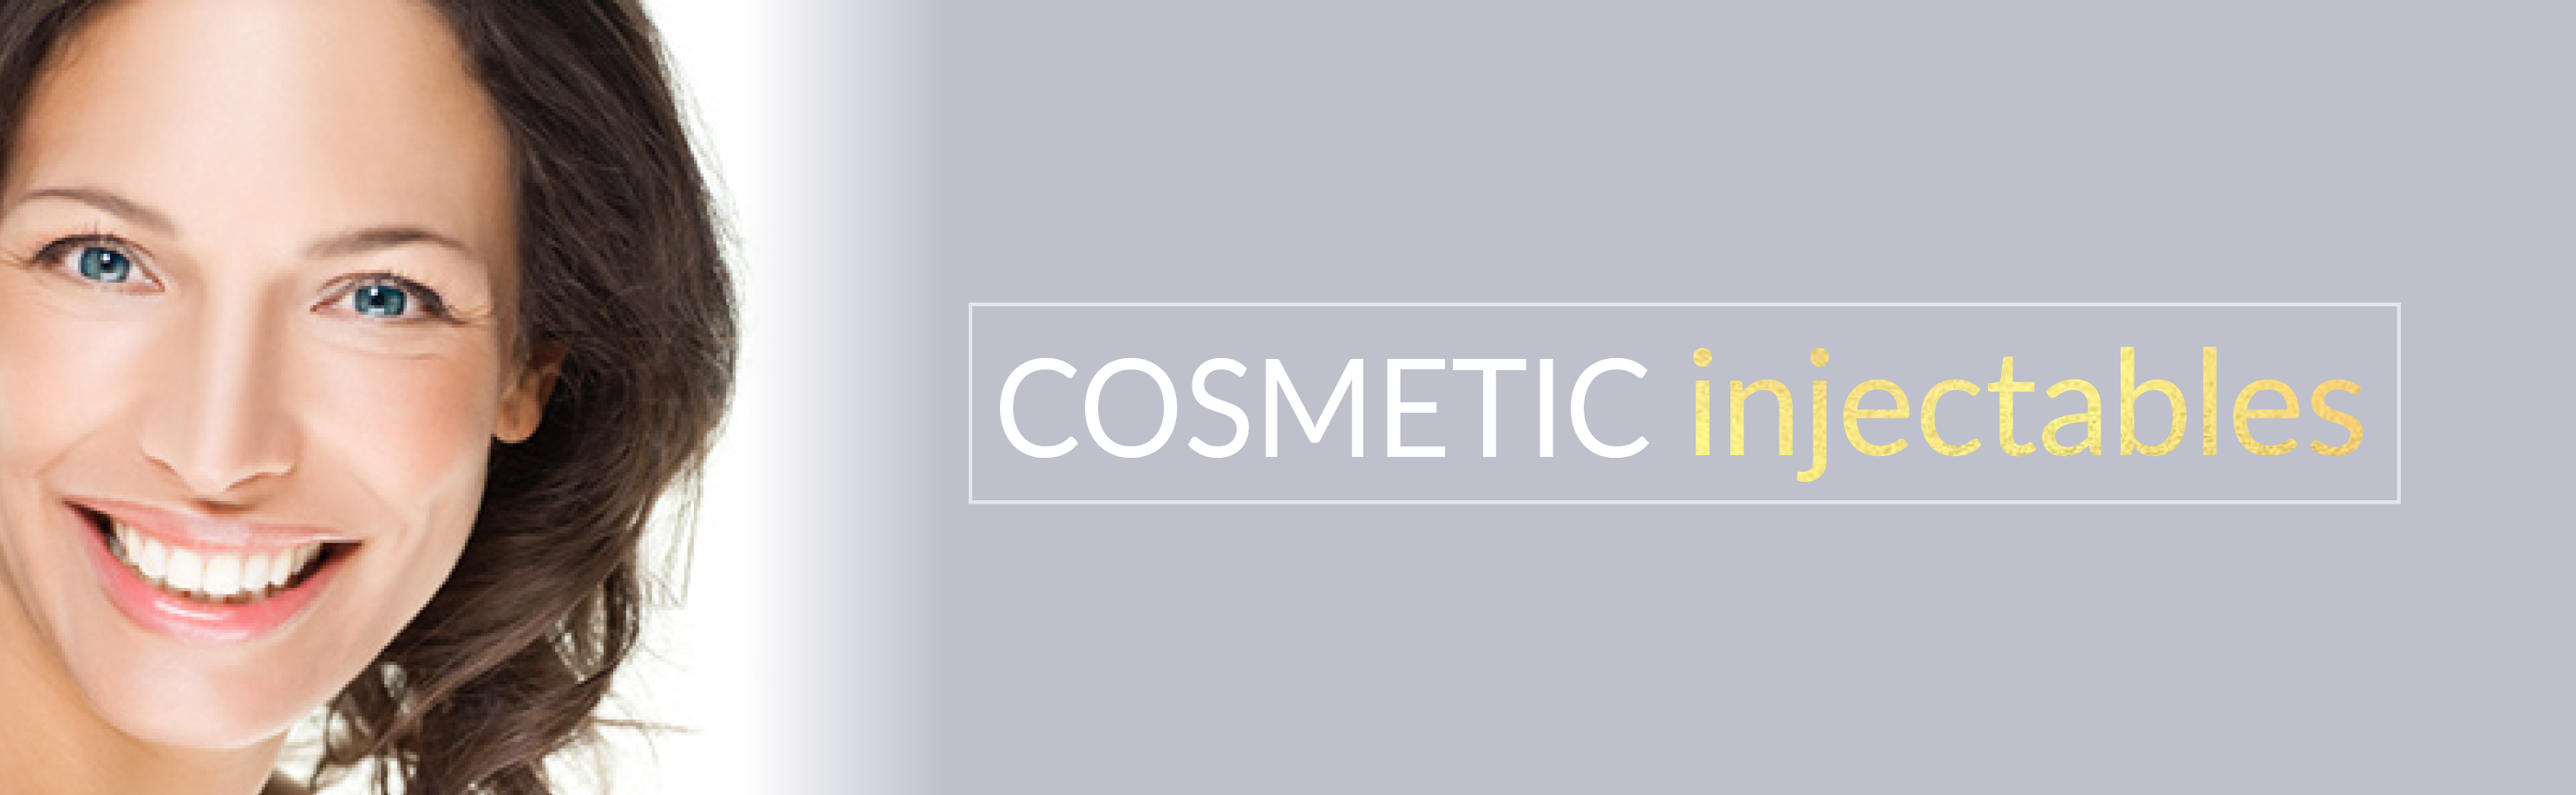 cosmetic-injectables-banner